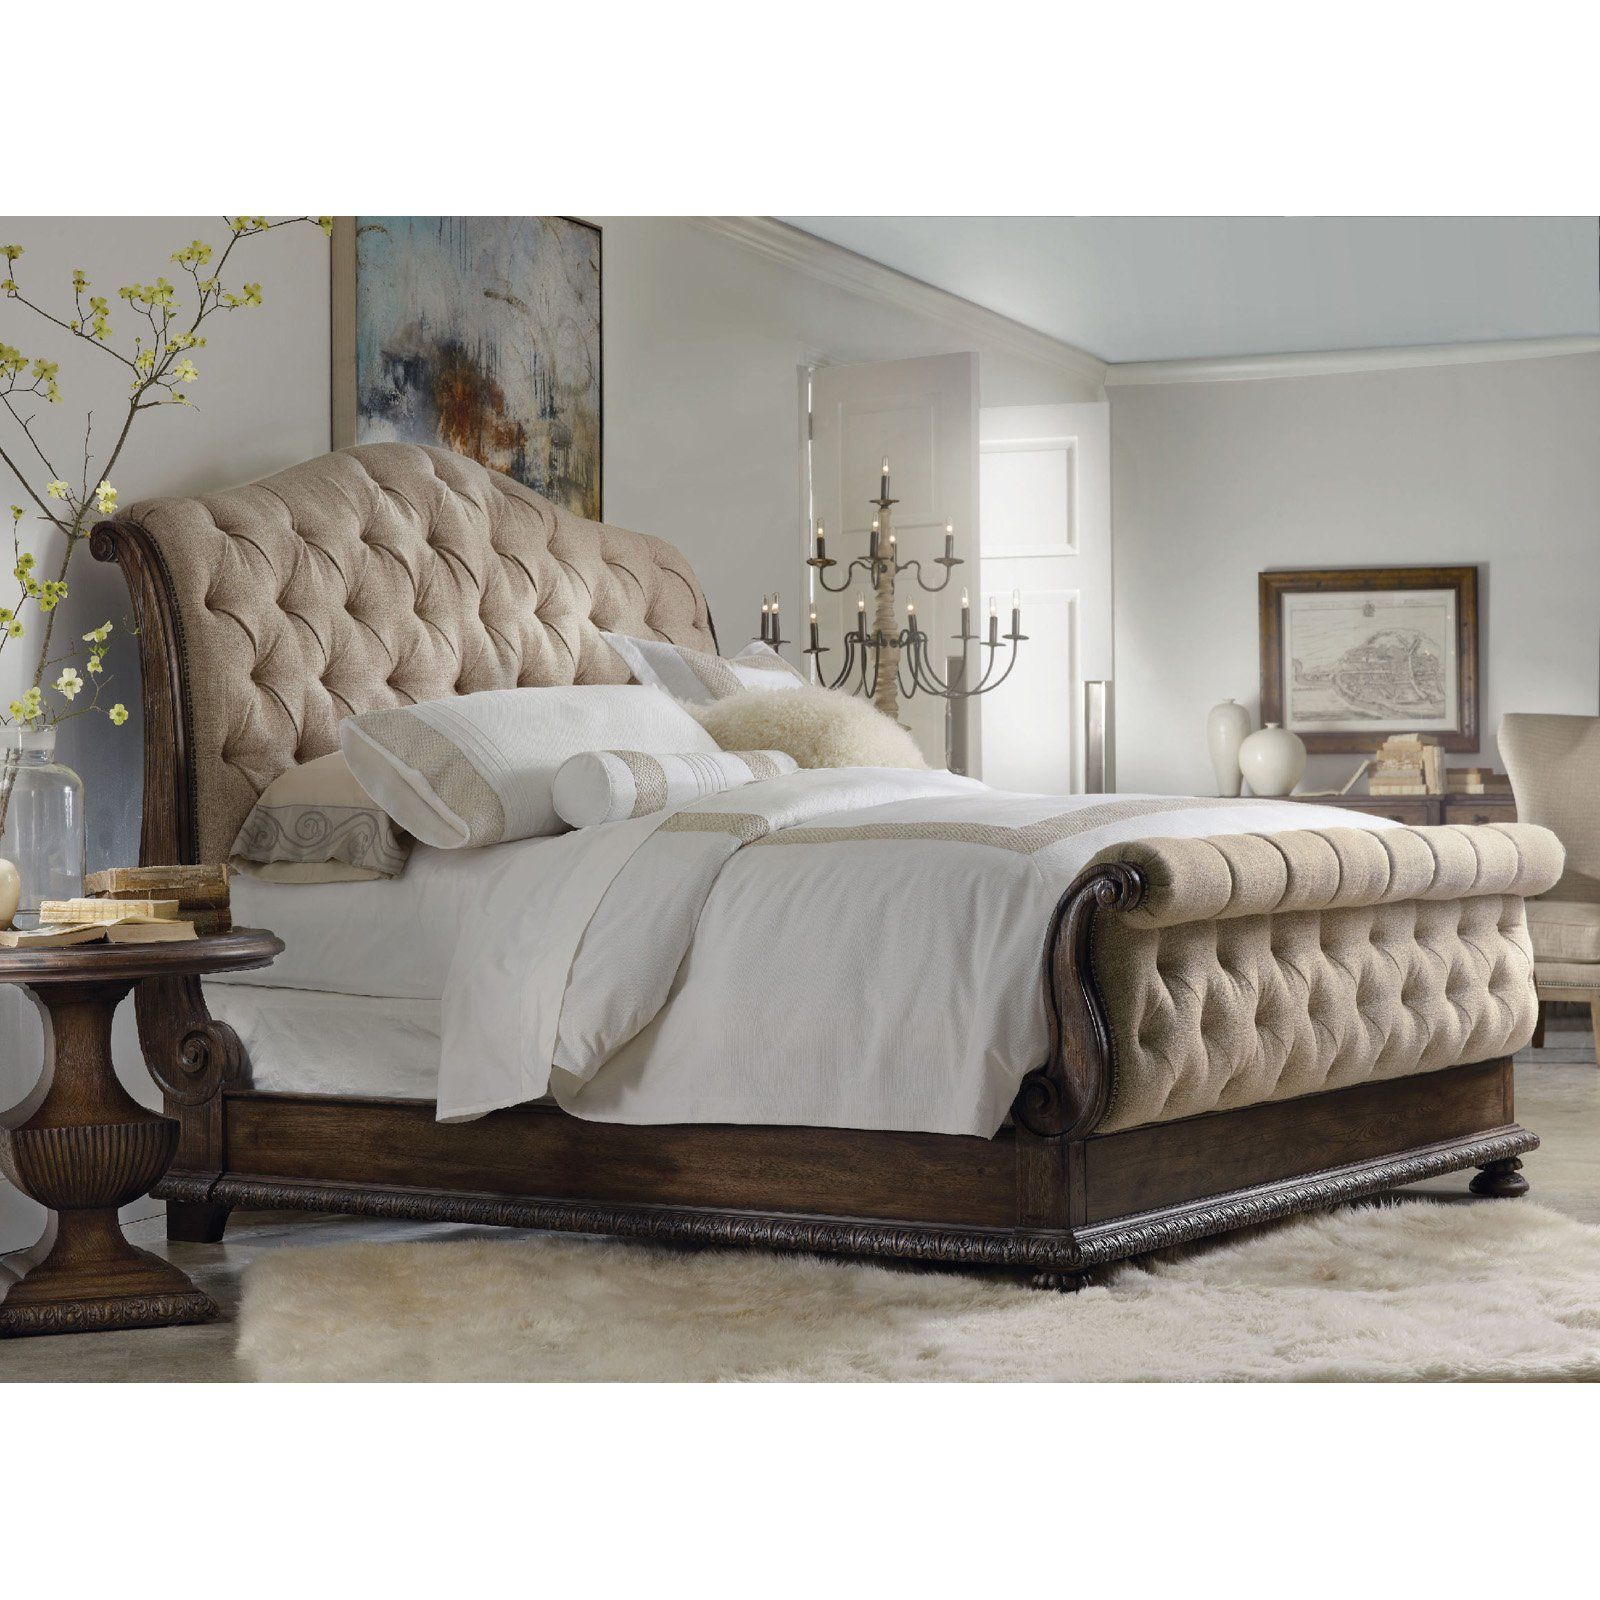 Rhapsody Tufted Upholstered Sleigh Bed  Hooker Furniture